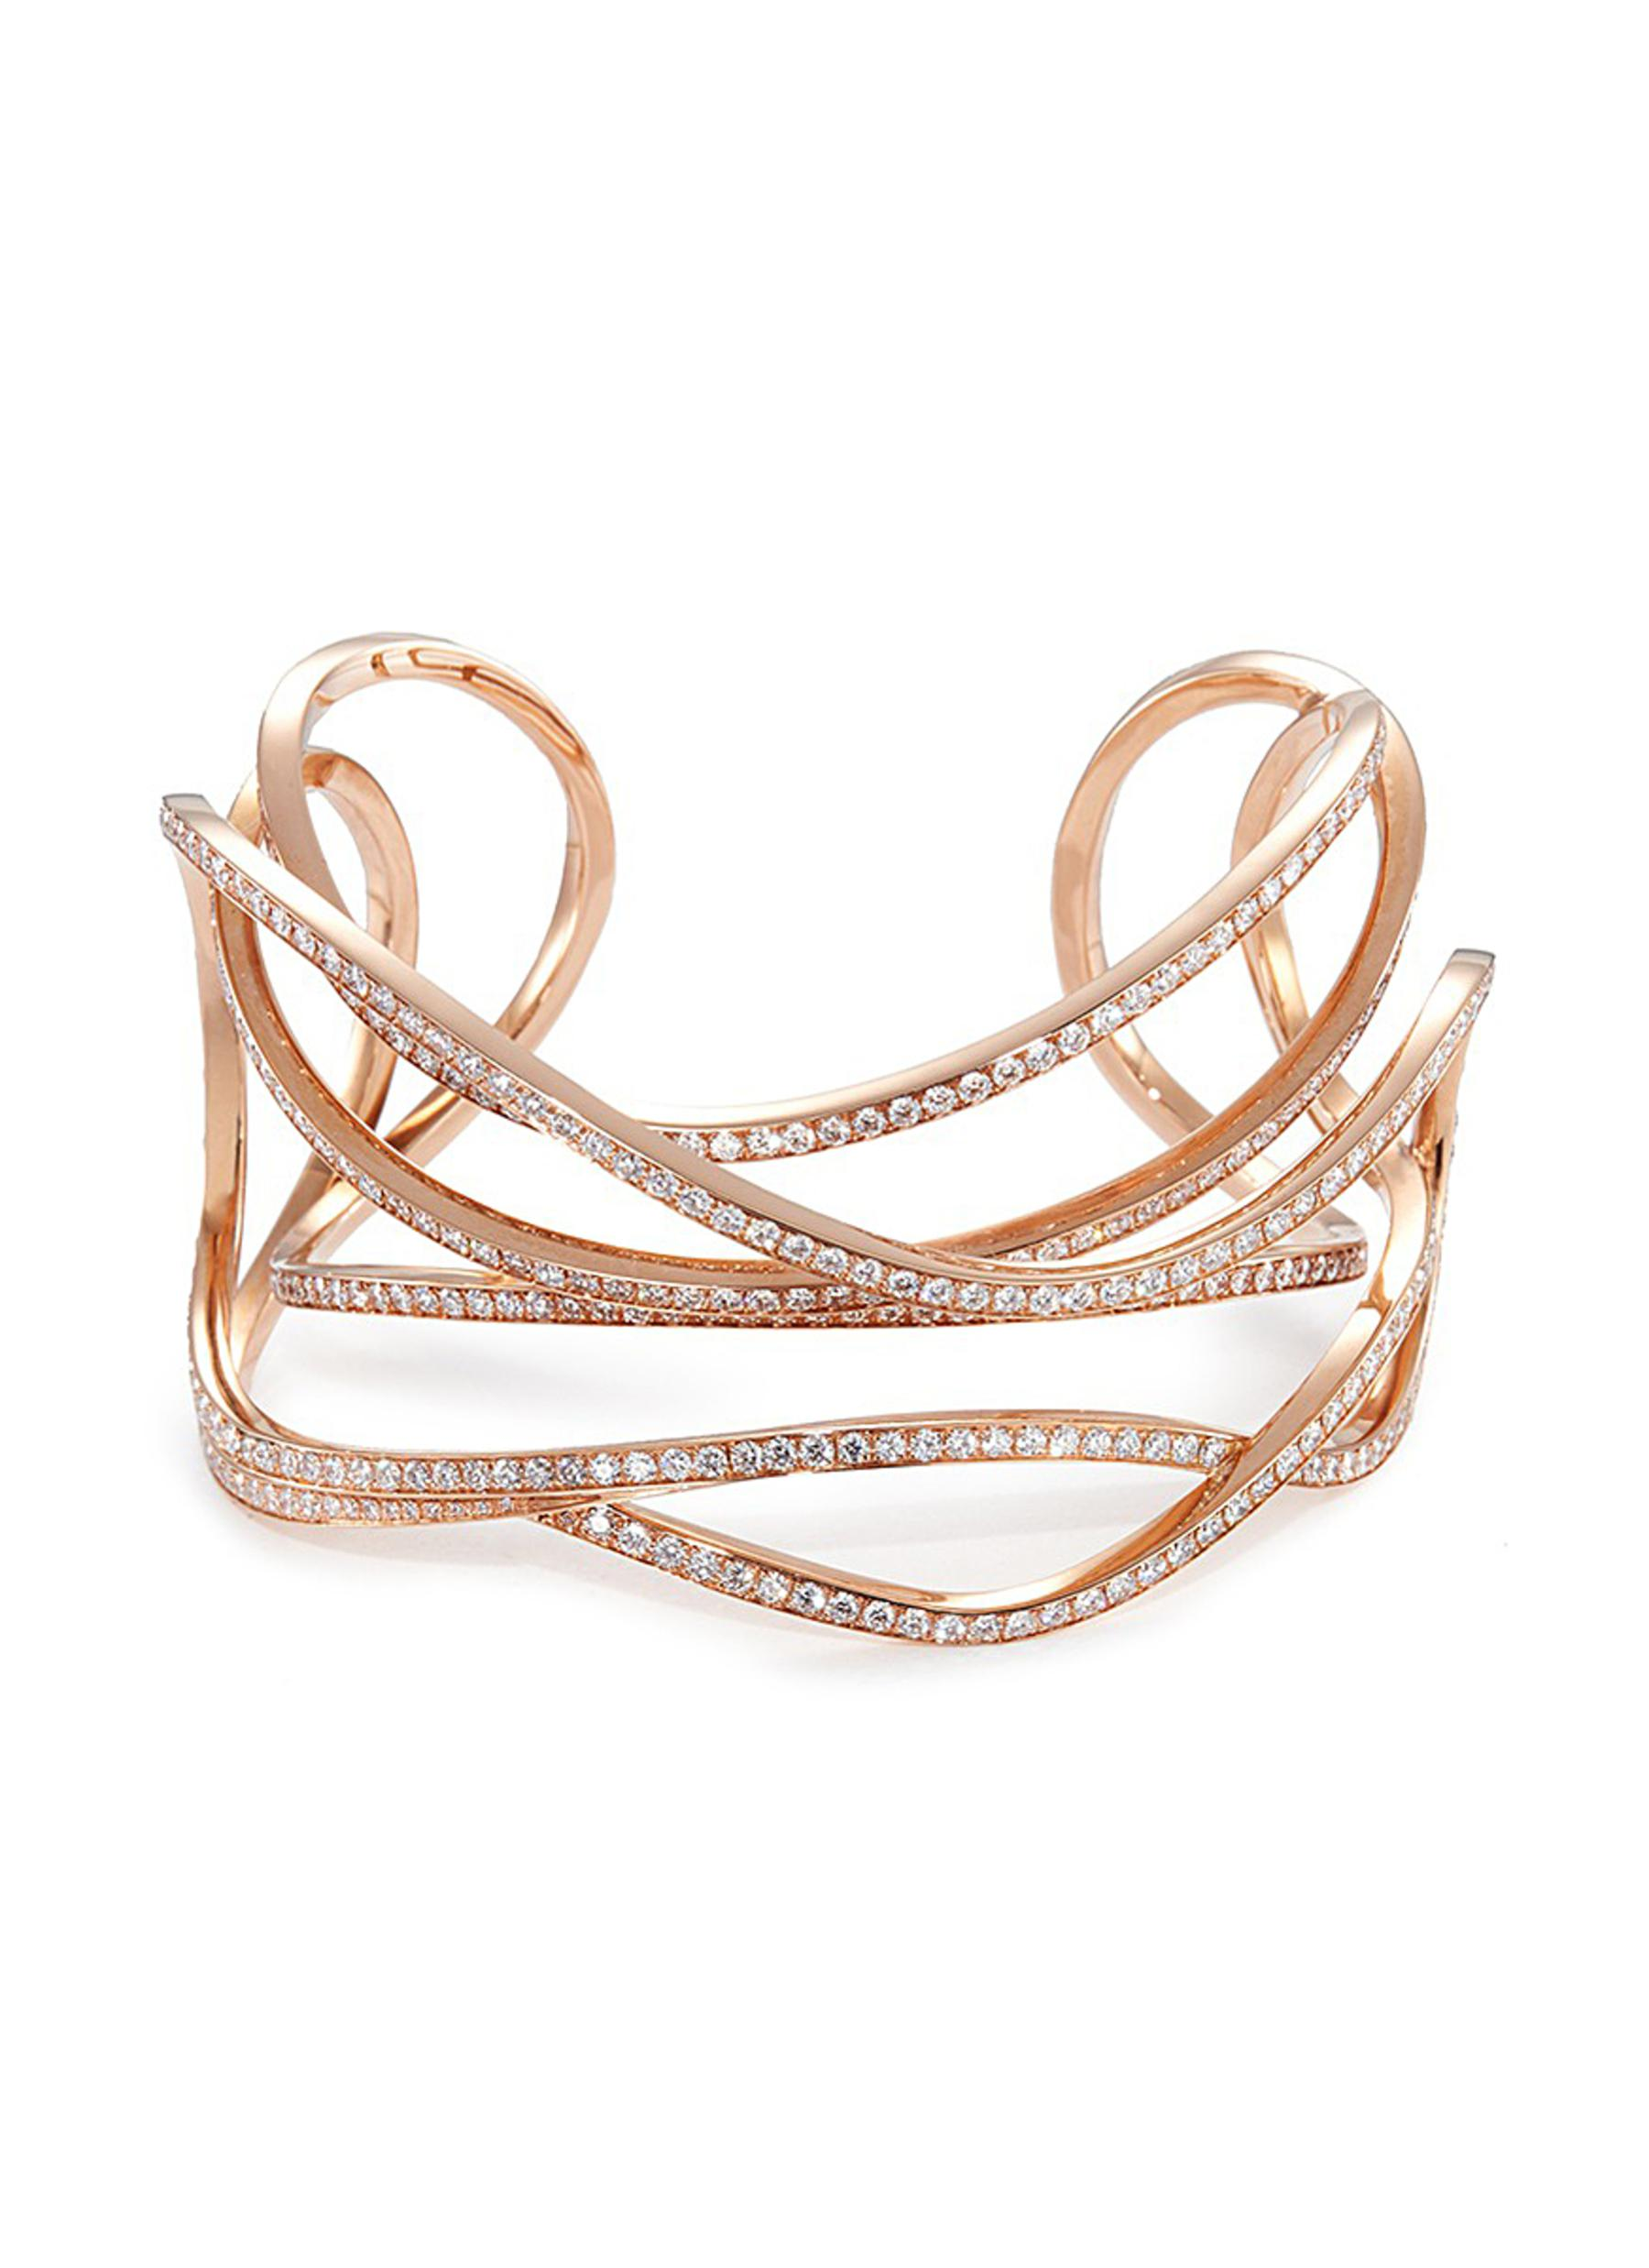 'SERPENTINE' DIAMOND 18K ROSE GOLD CUFF